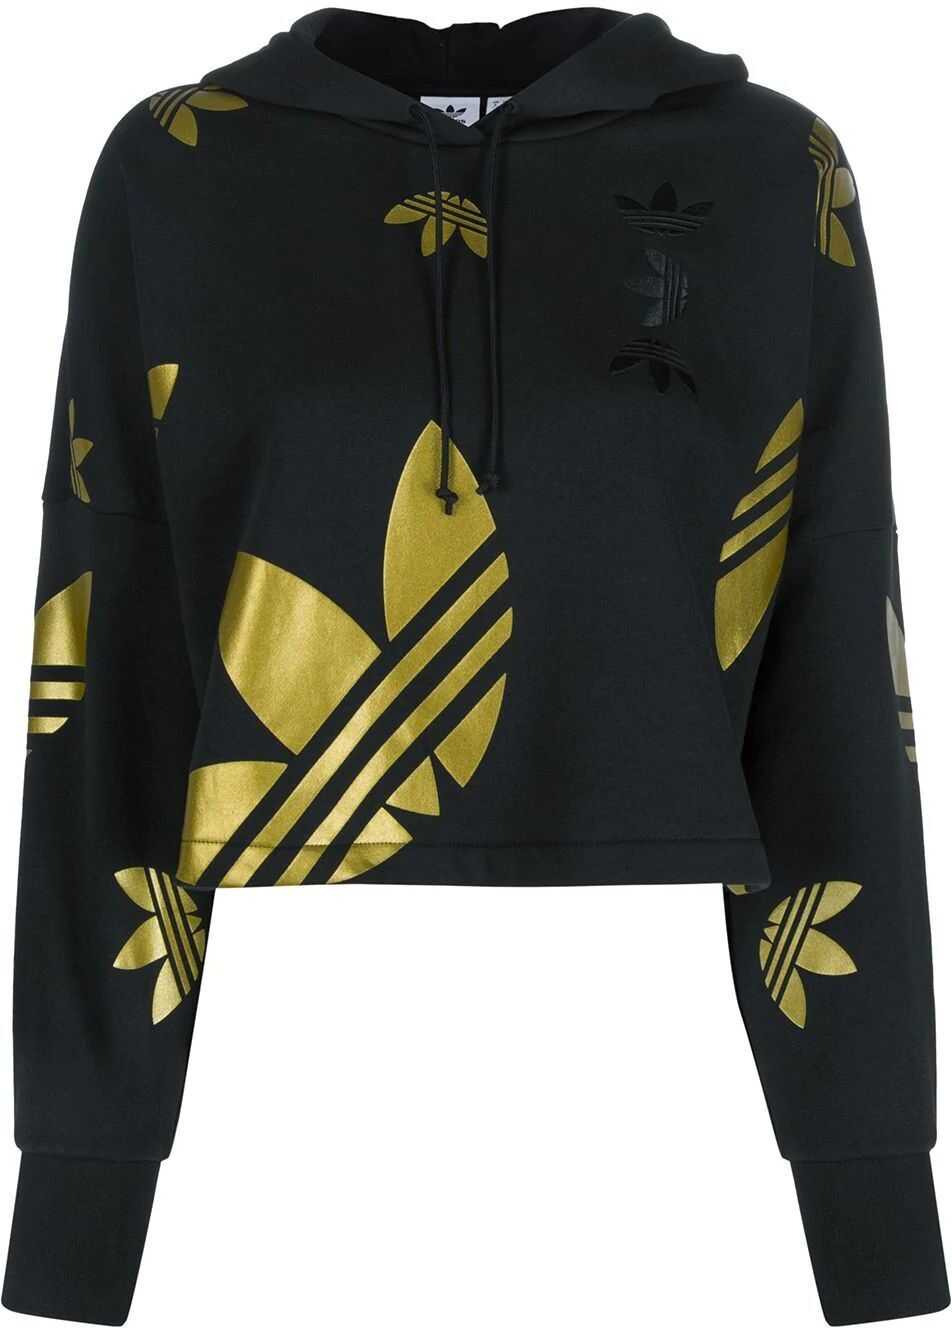 adidas Cotton Sweatshirt BLACK